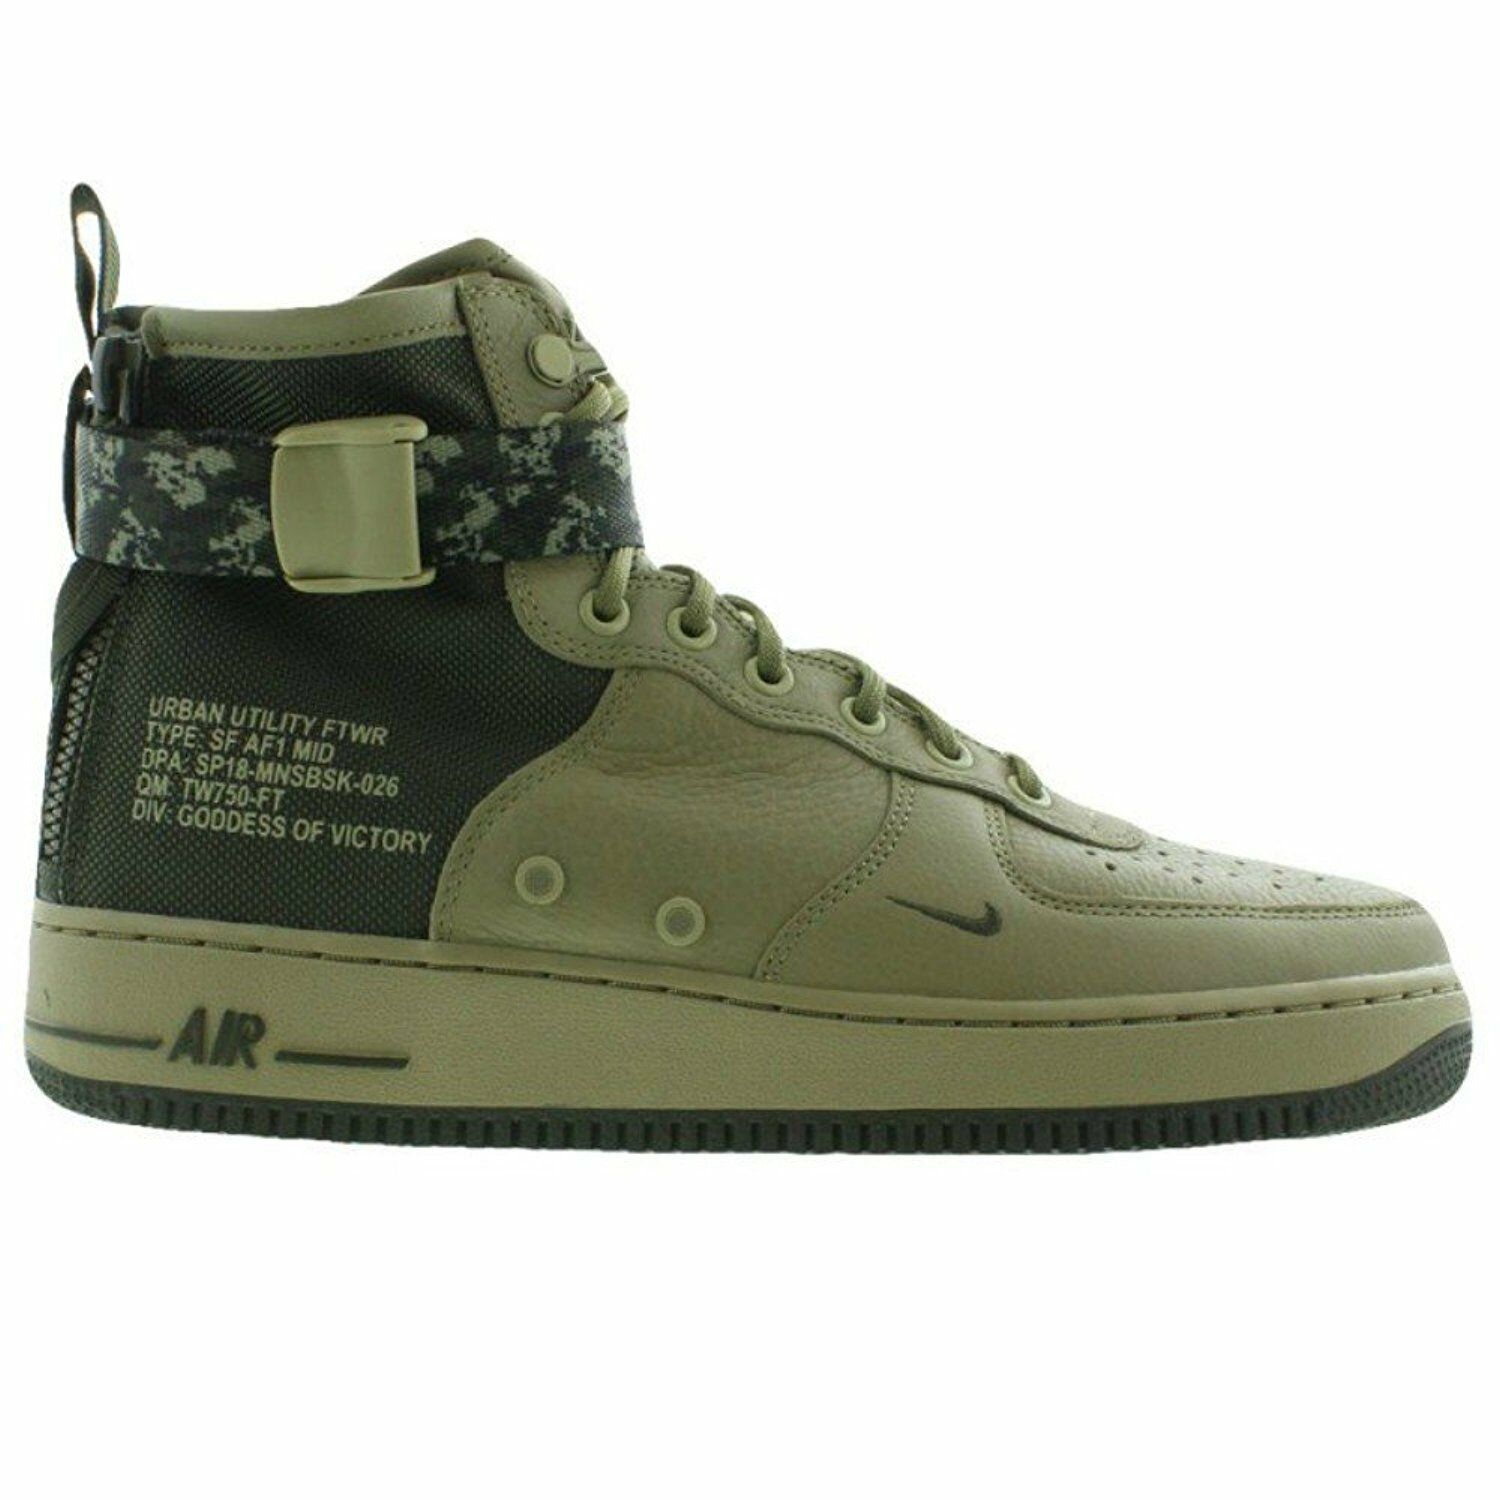 Nike air neutral force 1 - mitte neutral air olive / cargo khaki (917753 201) ab20c9